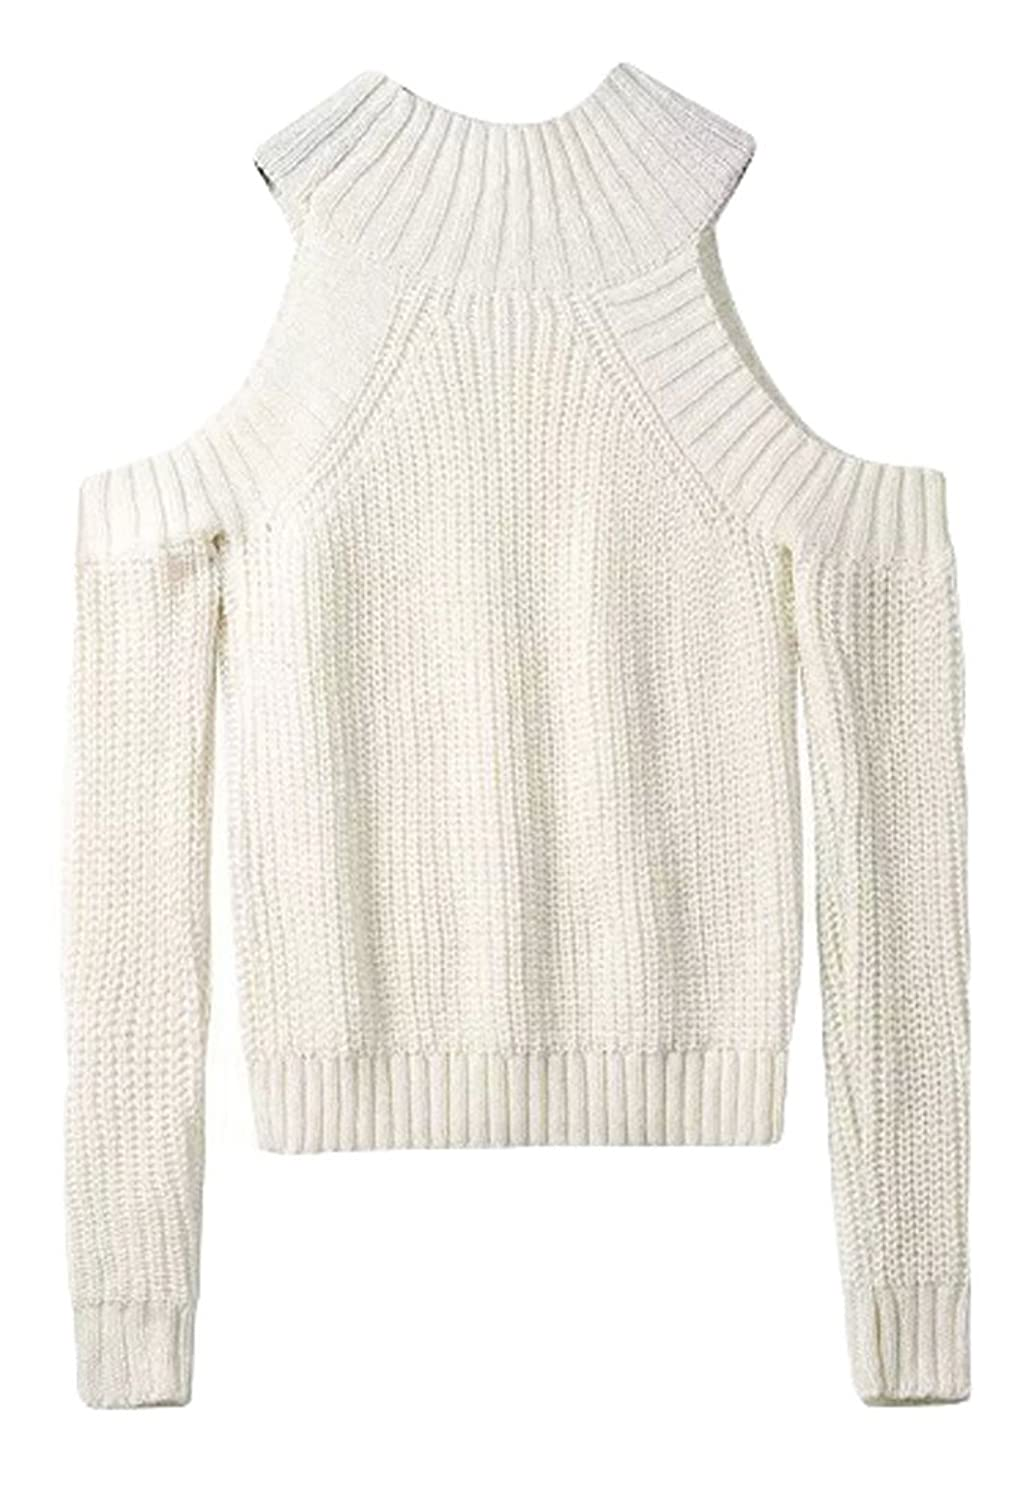 King Ma Womens High Neck off shoulder Long Sleeve Cable-knit Pullover Sweater